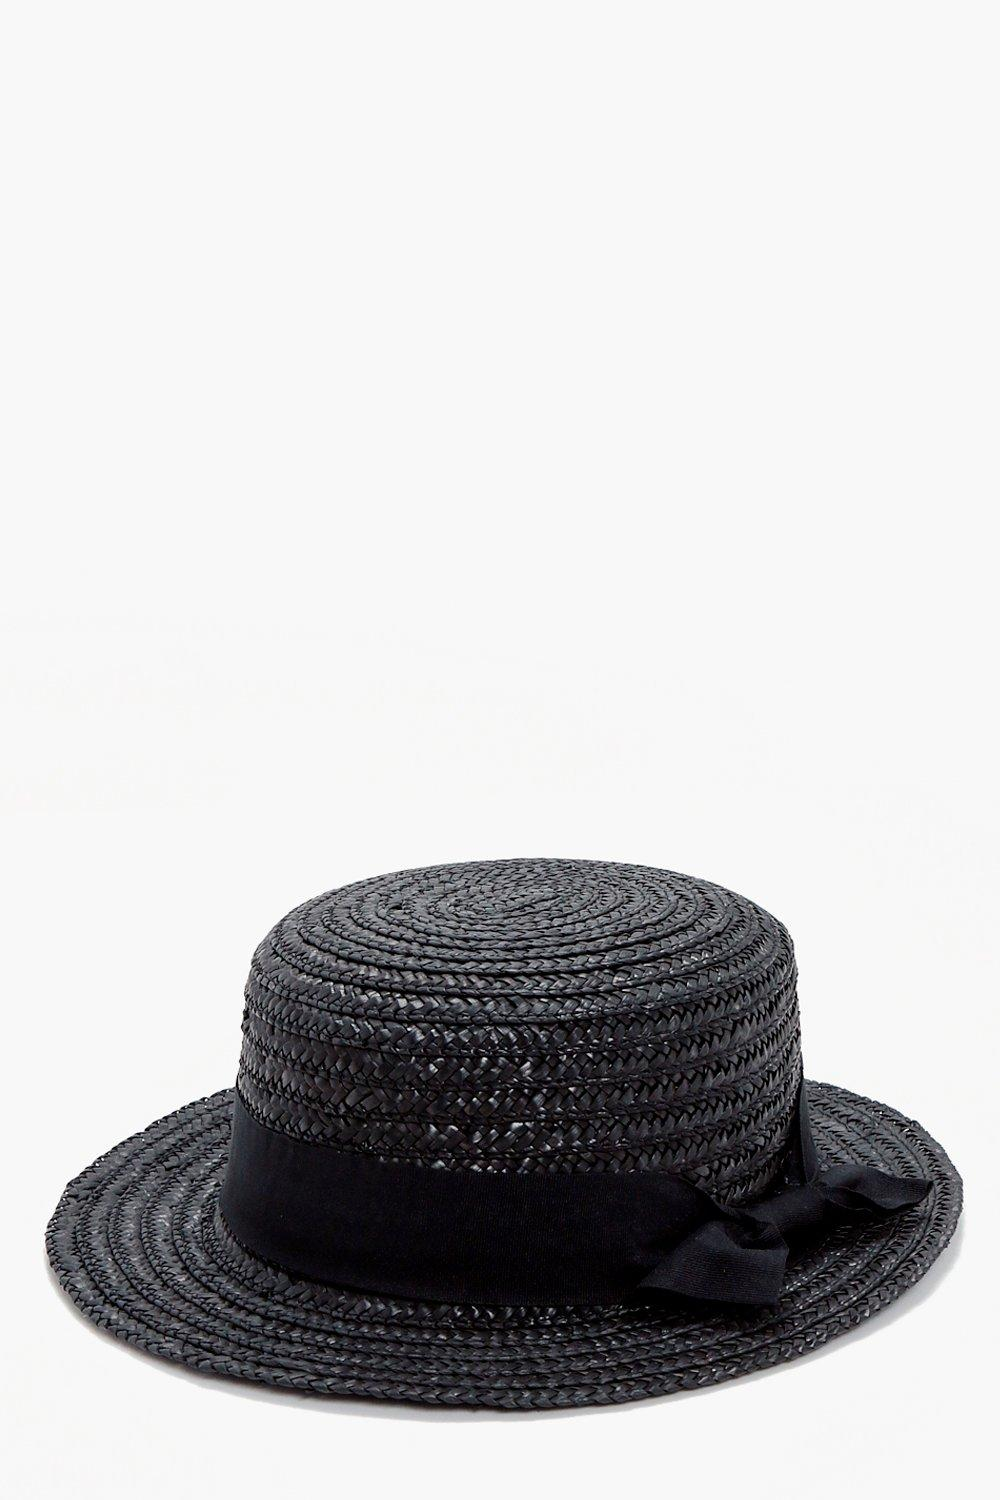 Small Brim Ribbon Detail Straw Hat - black - Kara